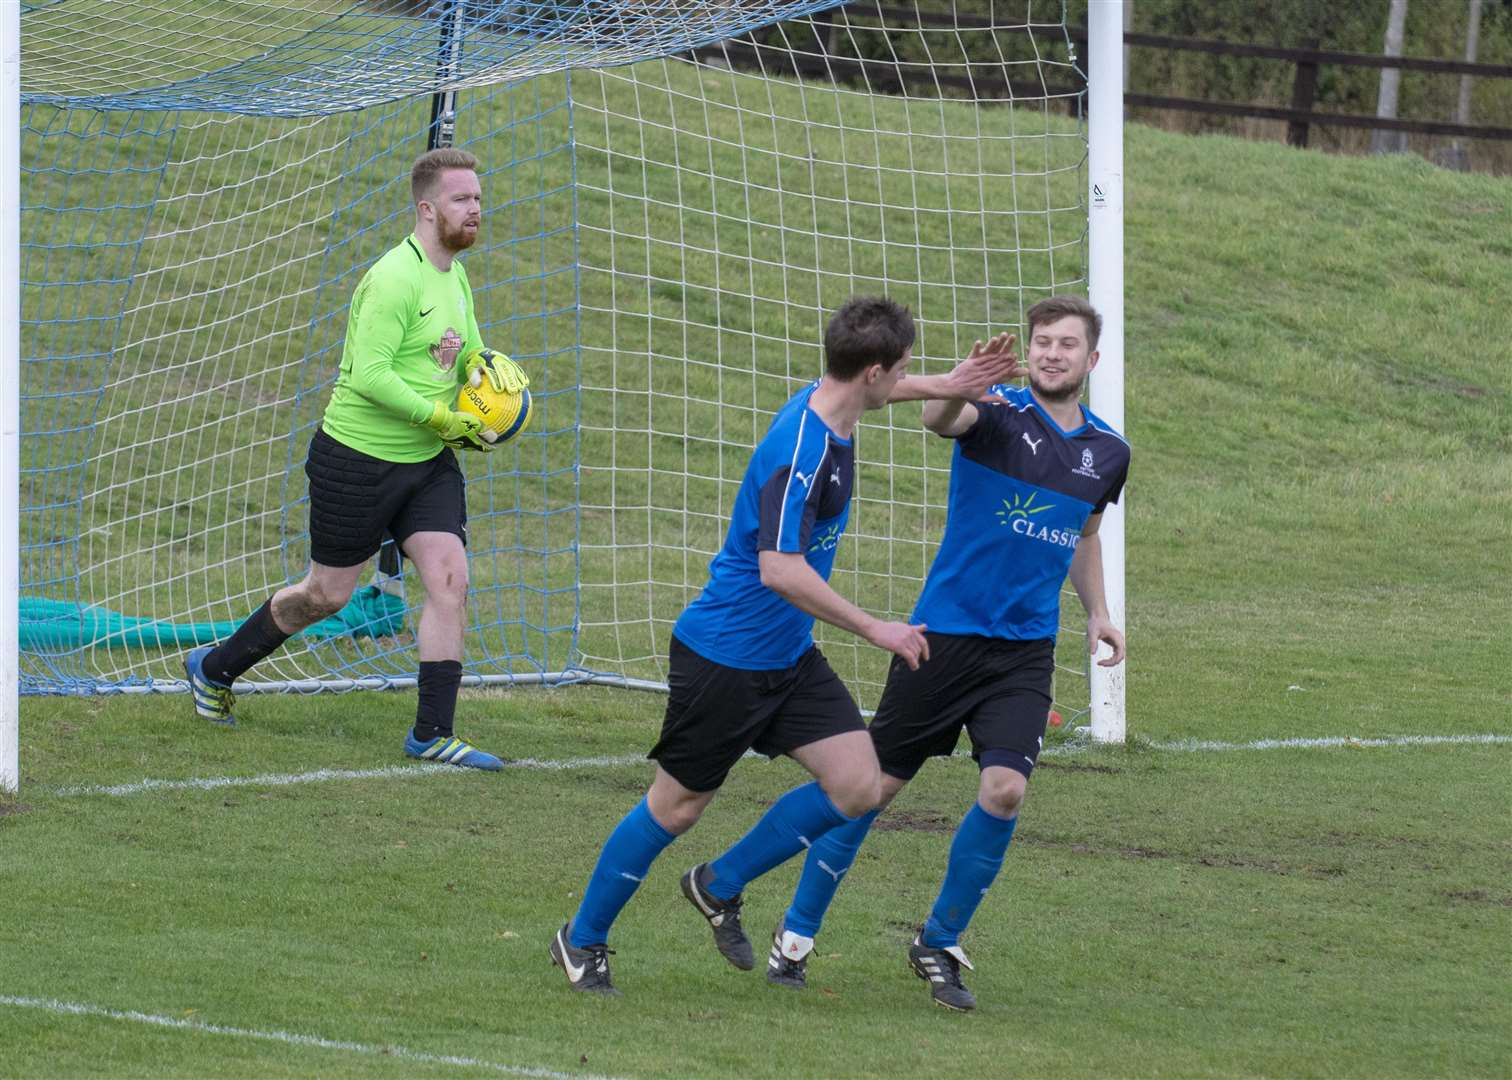 Ketton Reserves v Uppingham Reserves. Photo: Lee Hellwing (5212732)